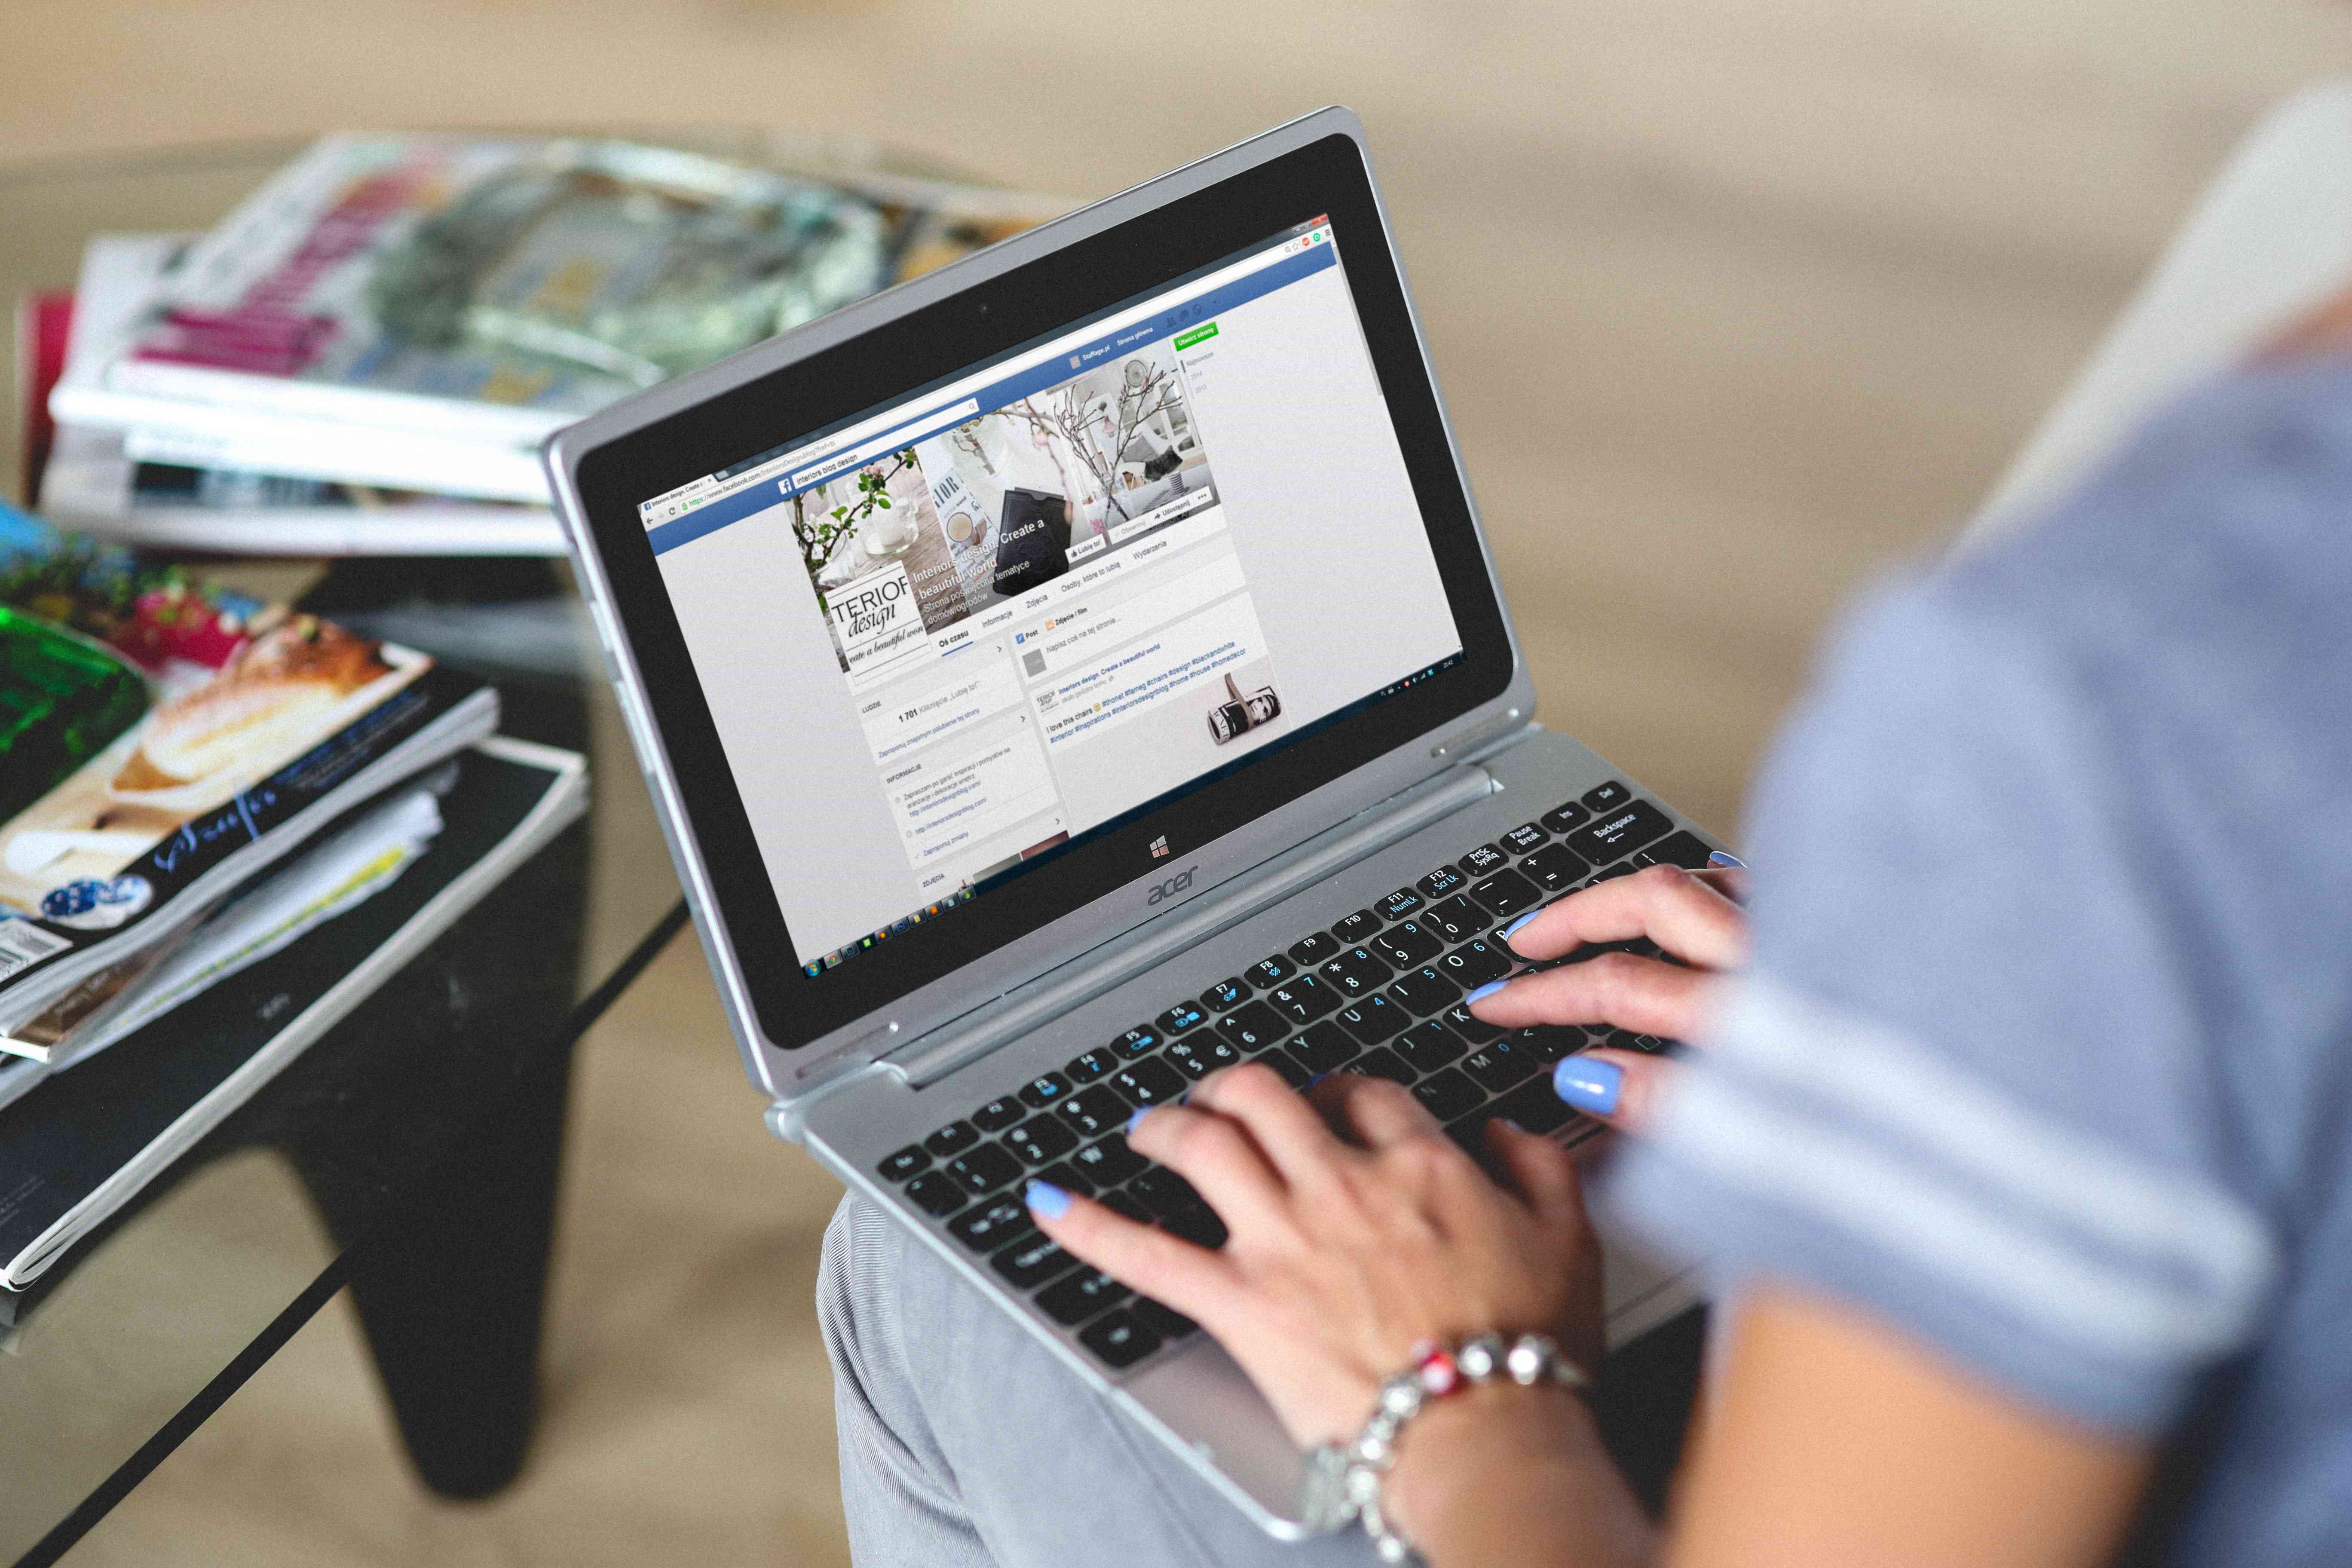 An image of a woman looking at a Facebook page on a laptop.